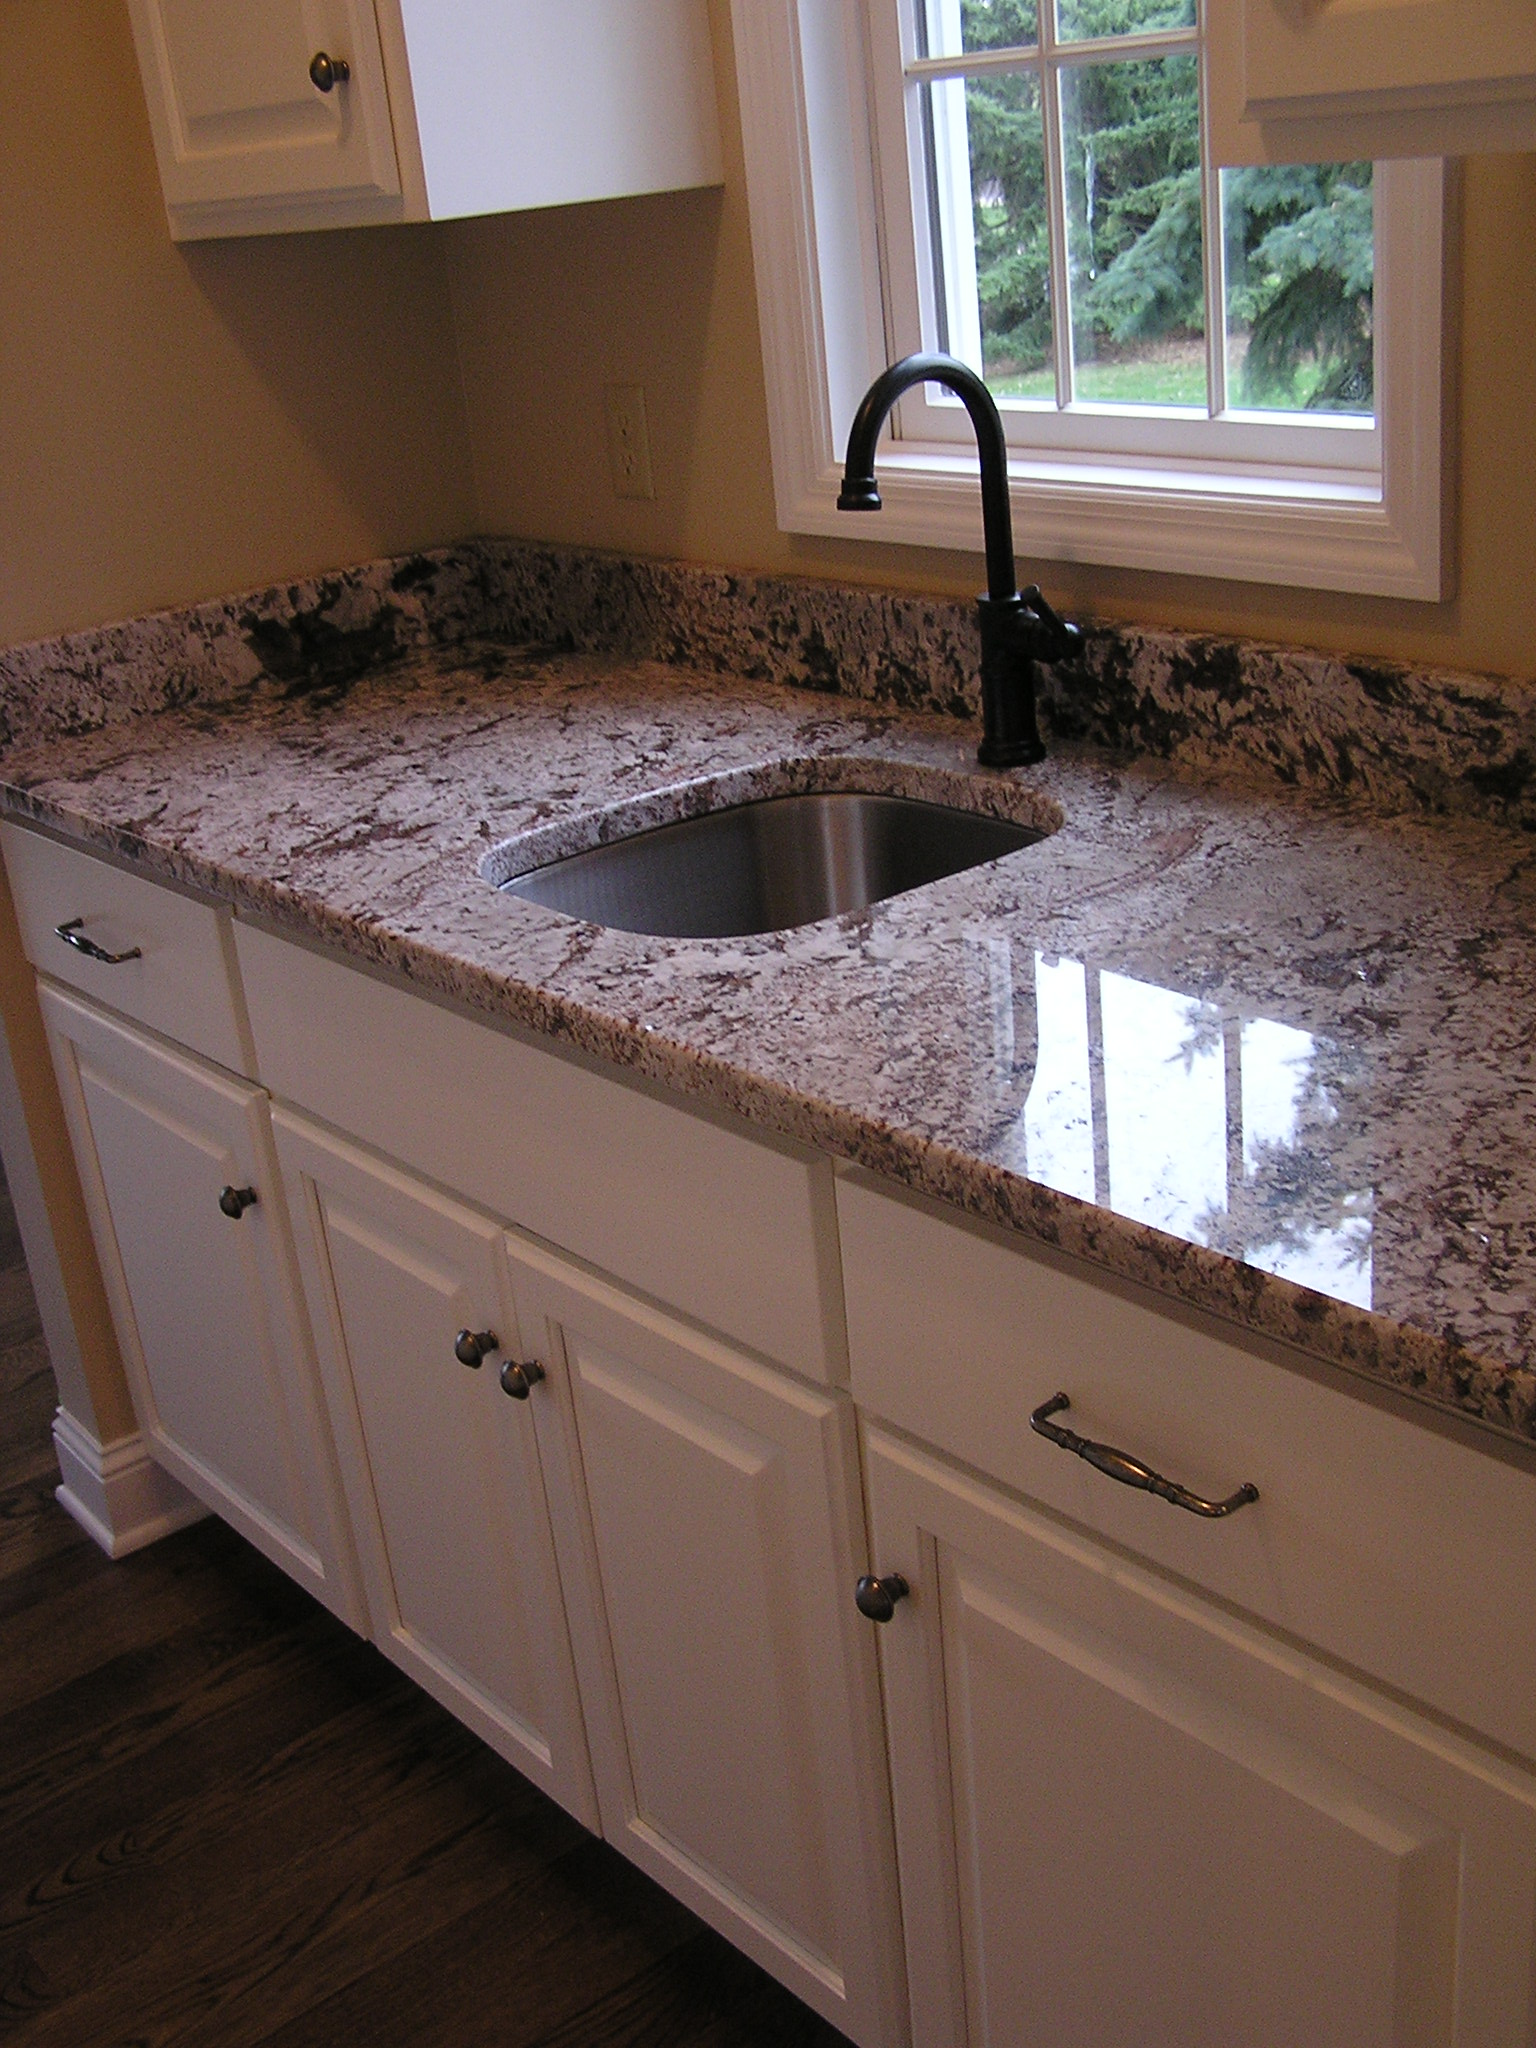 Twin Cities kitchen countertops